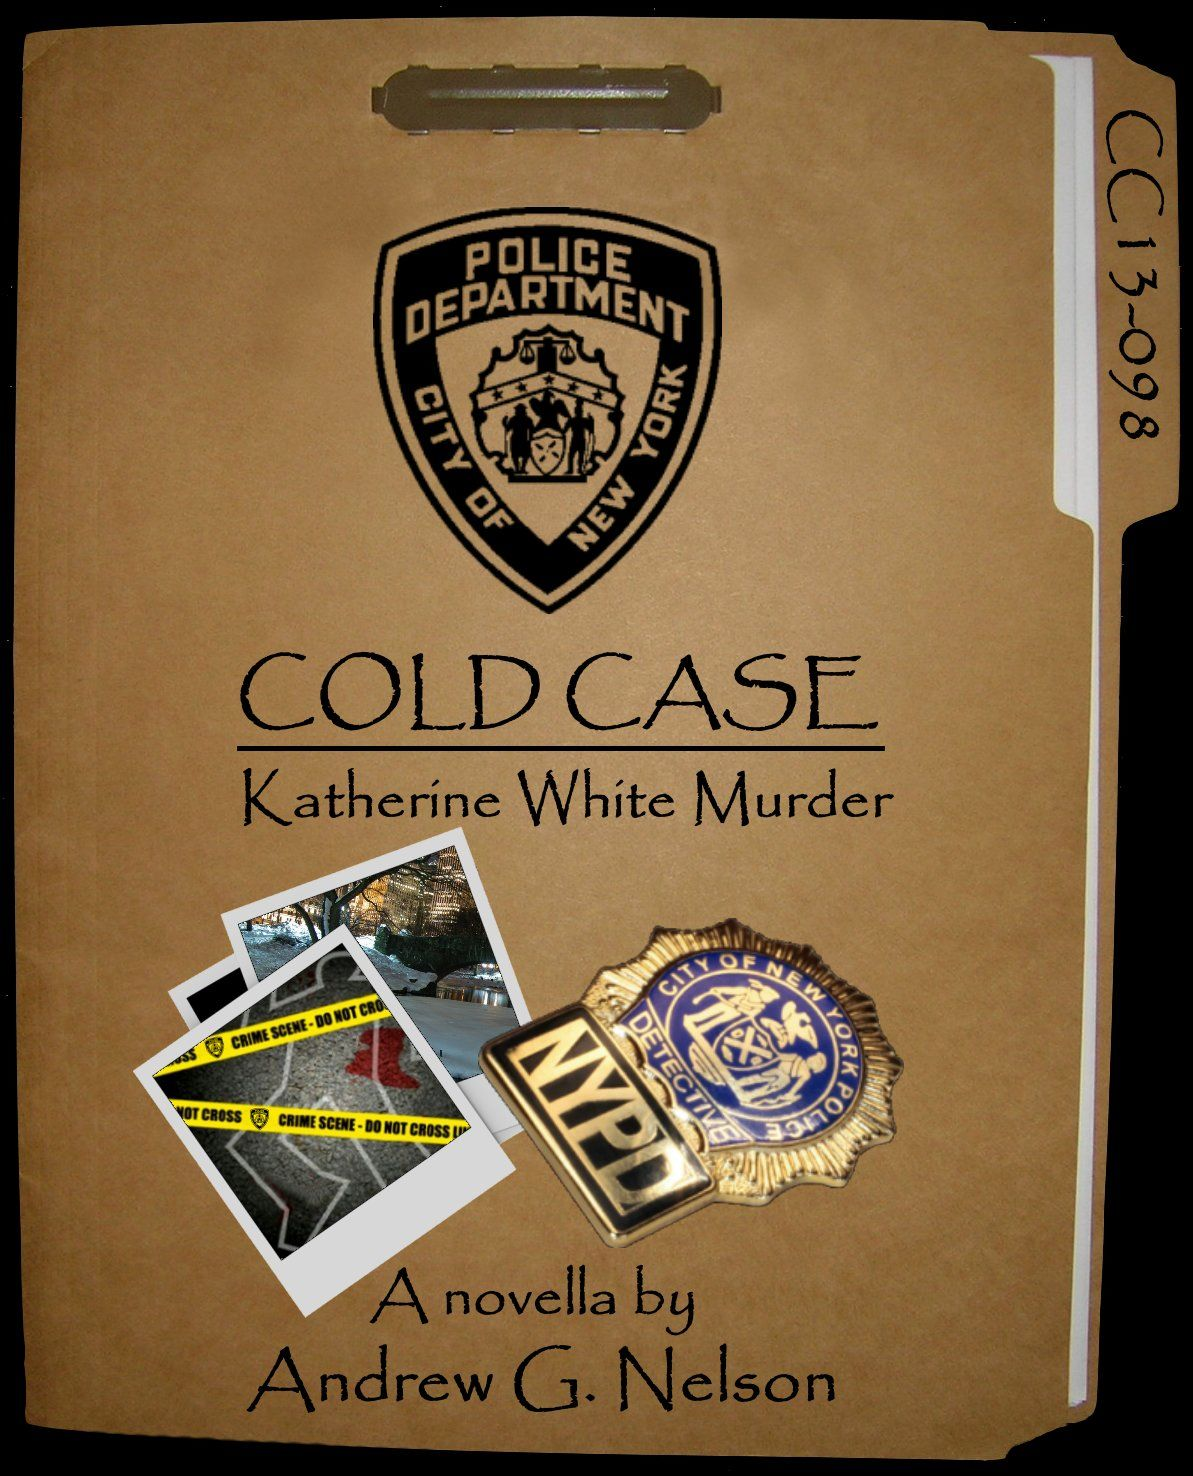 NYPD Cold Case: The Katherine White Murder